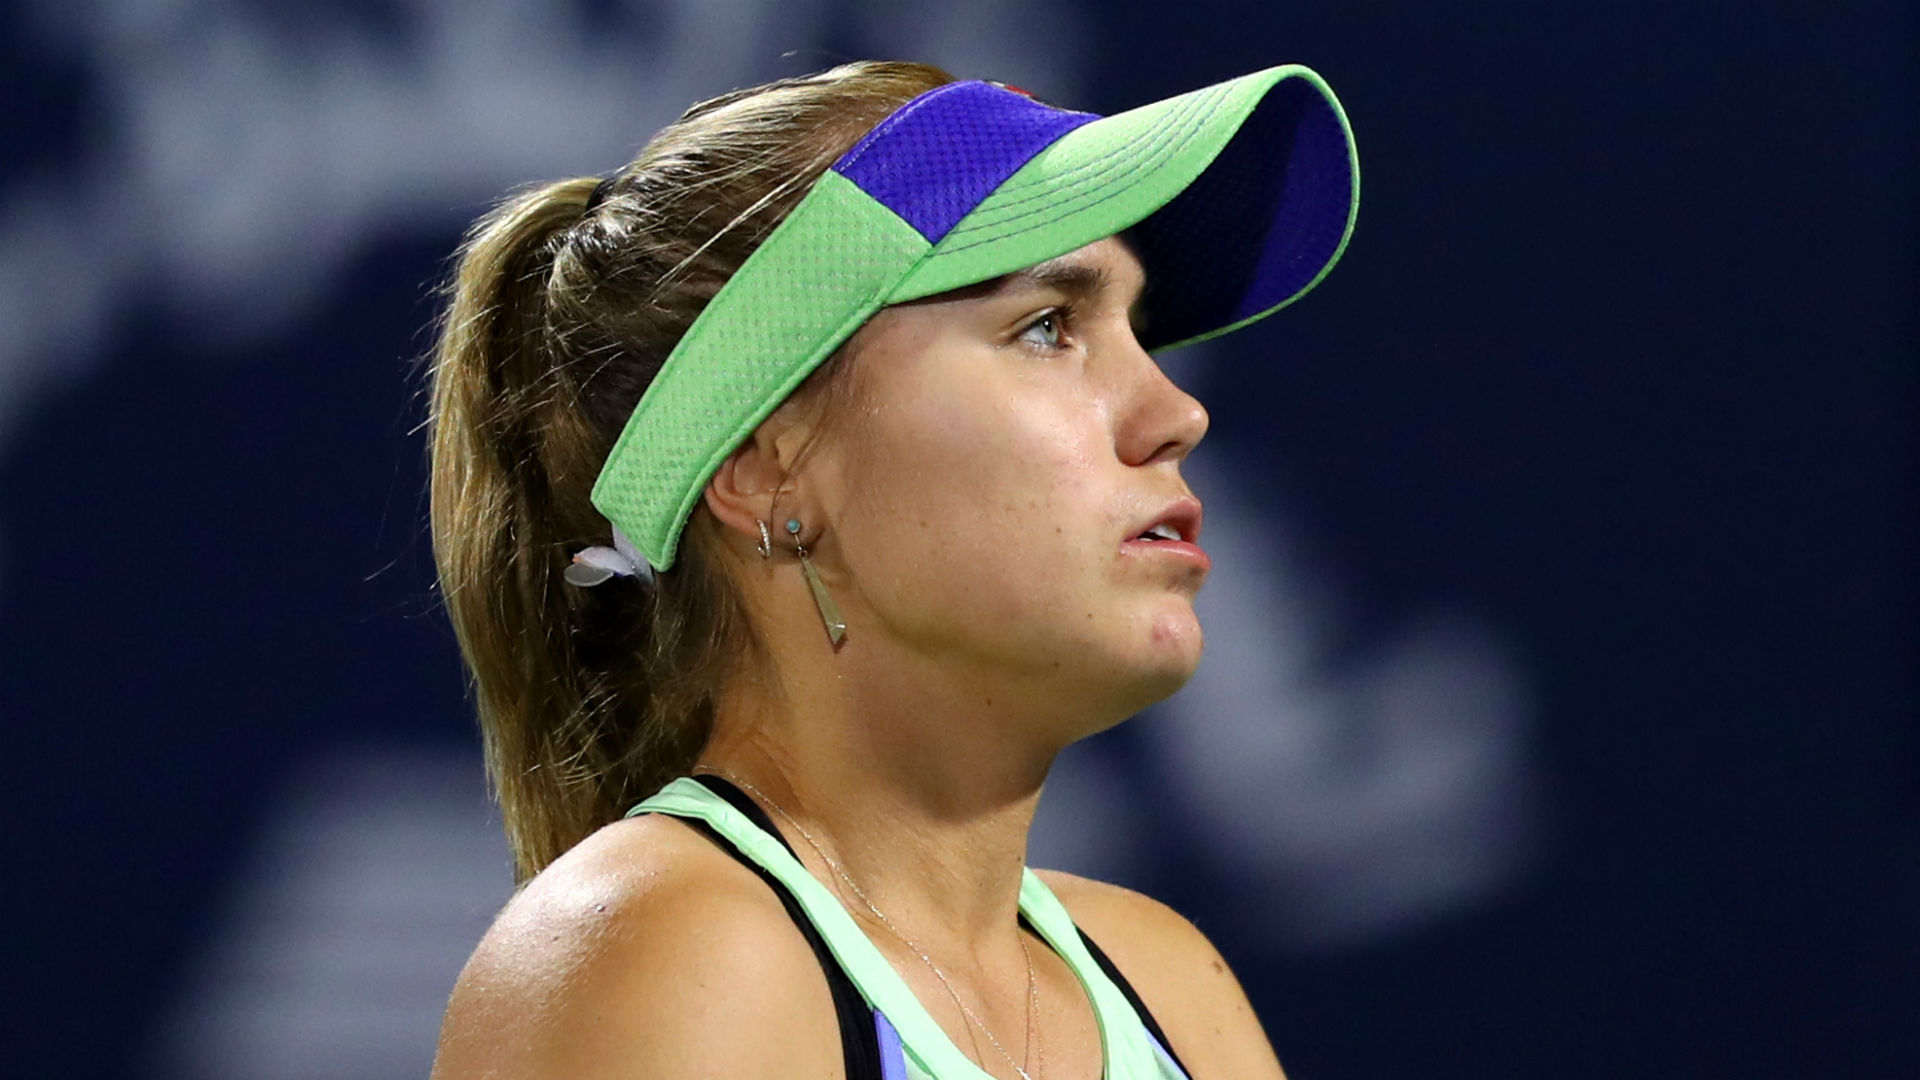 Australian Open champion Kenin crashes out in Dubai